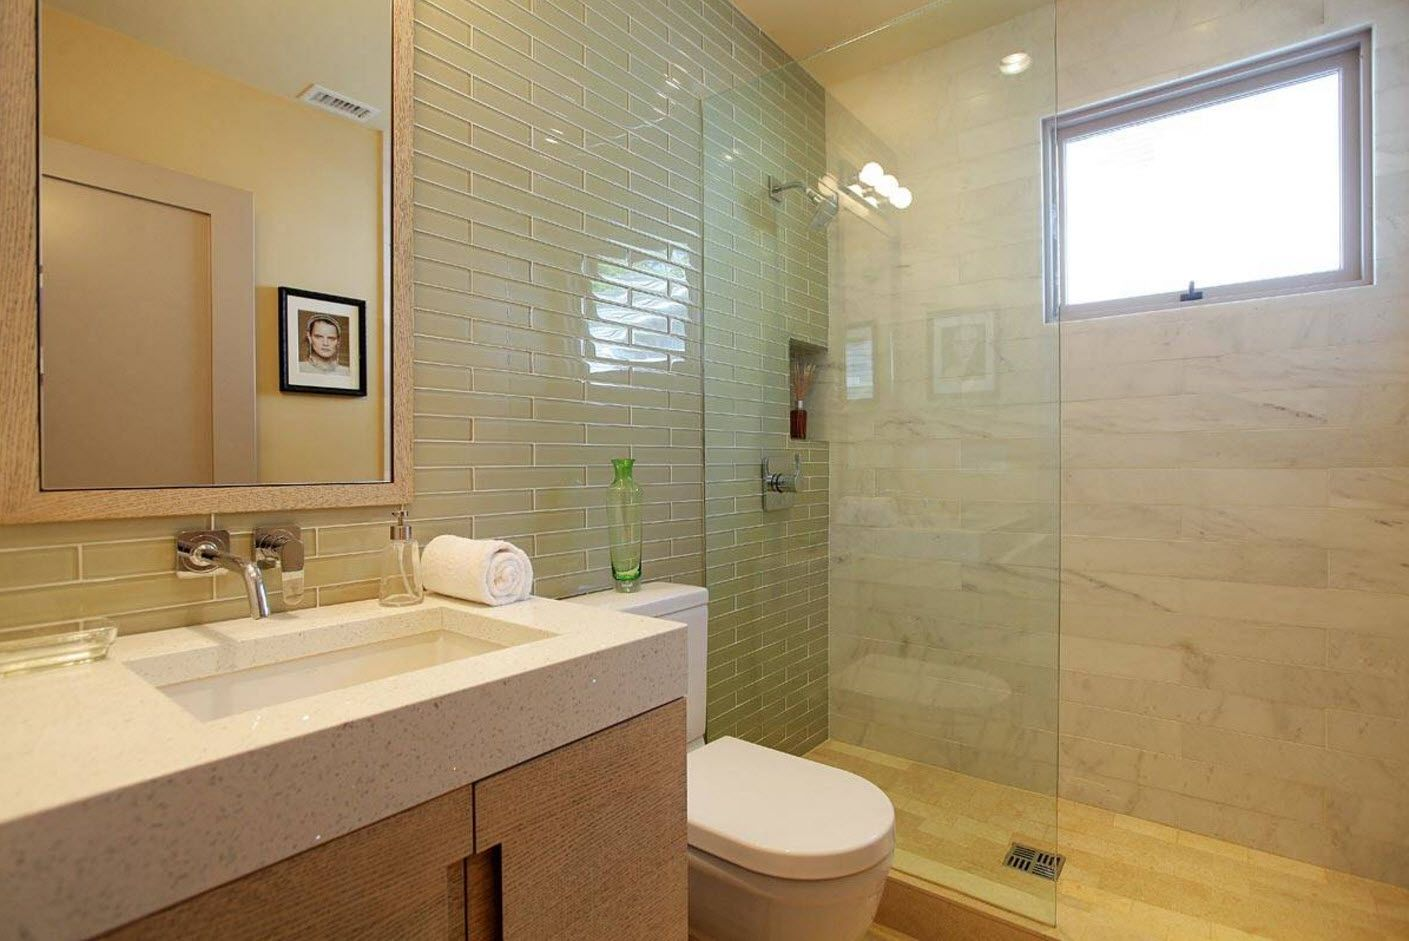 Nice modern bathroom example